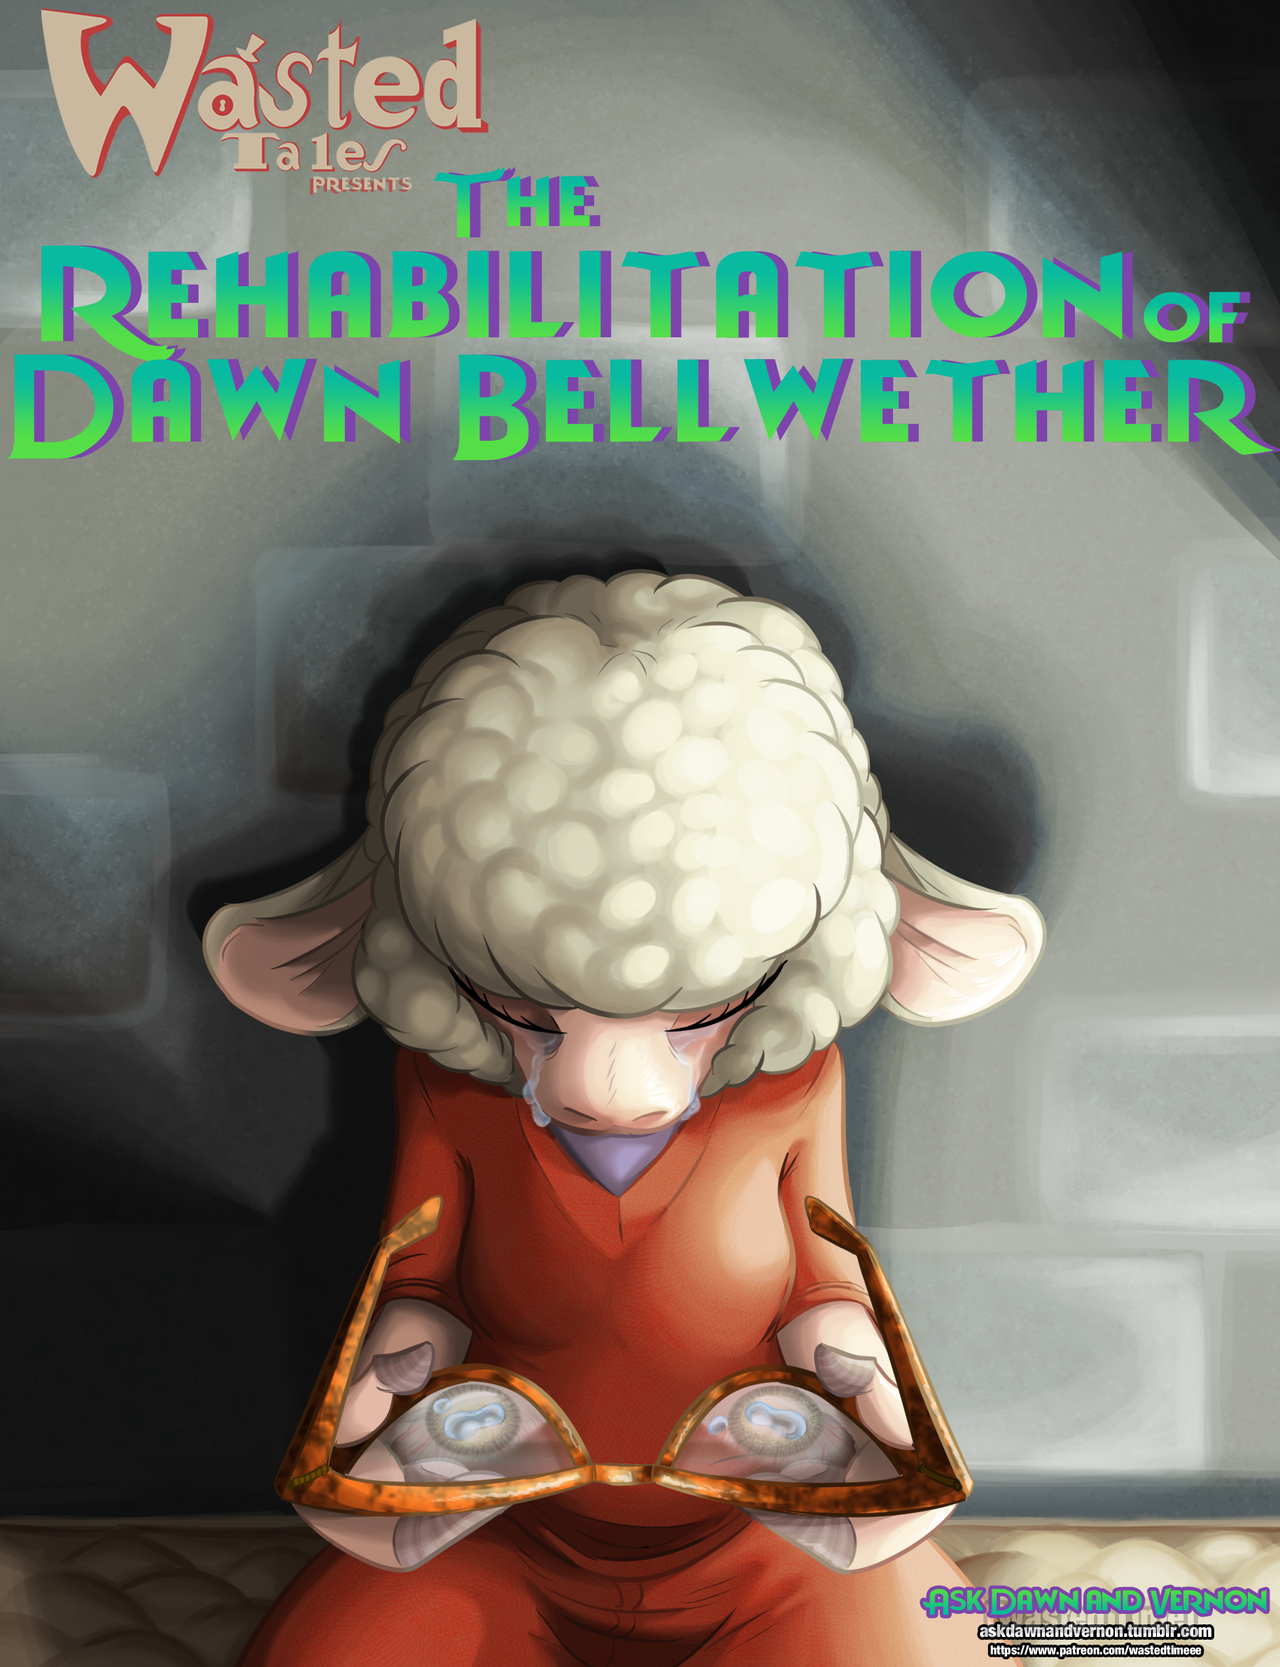 Story: The Rehabilitation of Dawn Bellwether